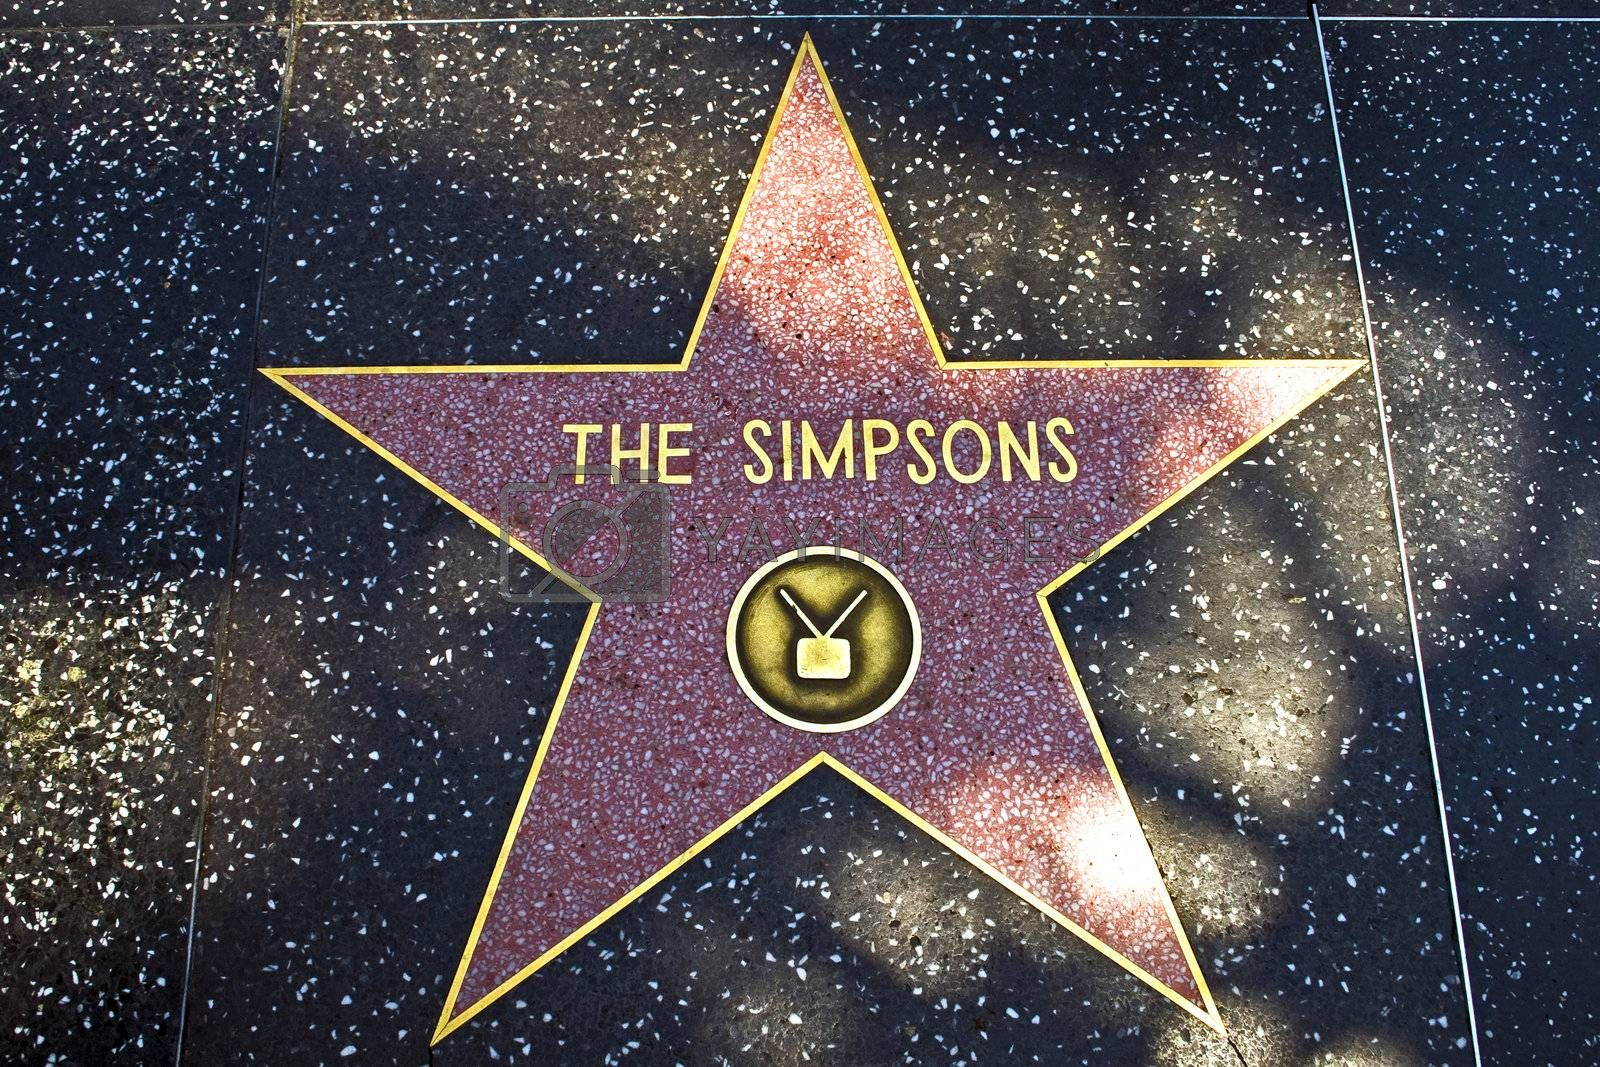 HOLLYWOOD, LOS ANGELES - JULY 5: the star for The Simpsons on the walk of fame in Hollywood on a sunny day on July 5,2008, Los Angeles, USA